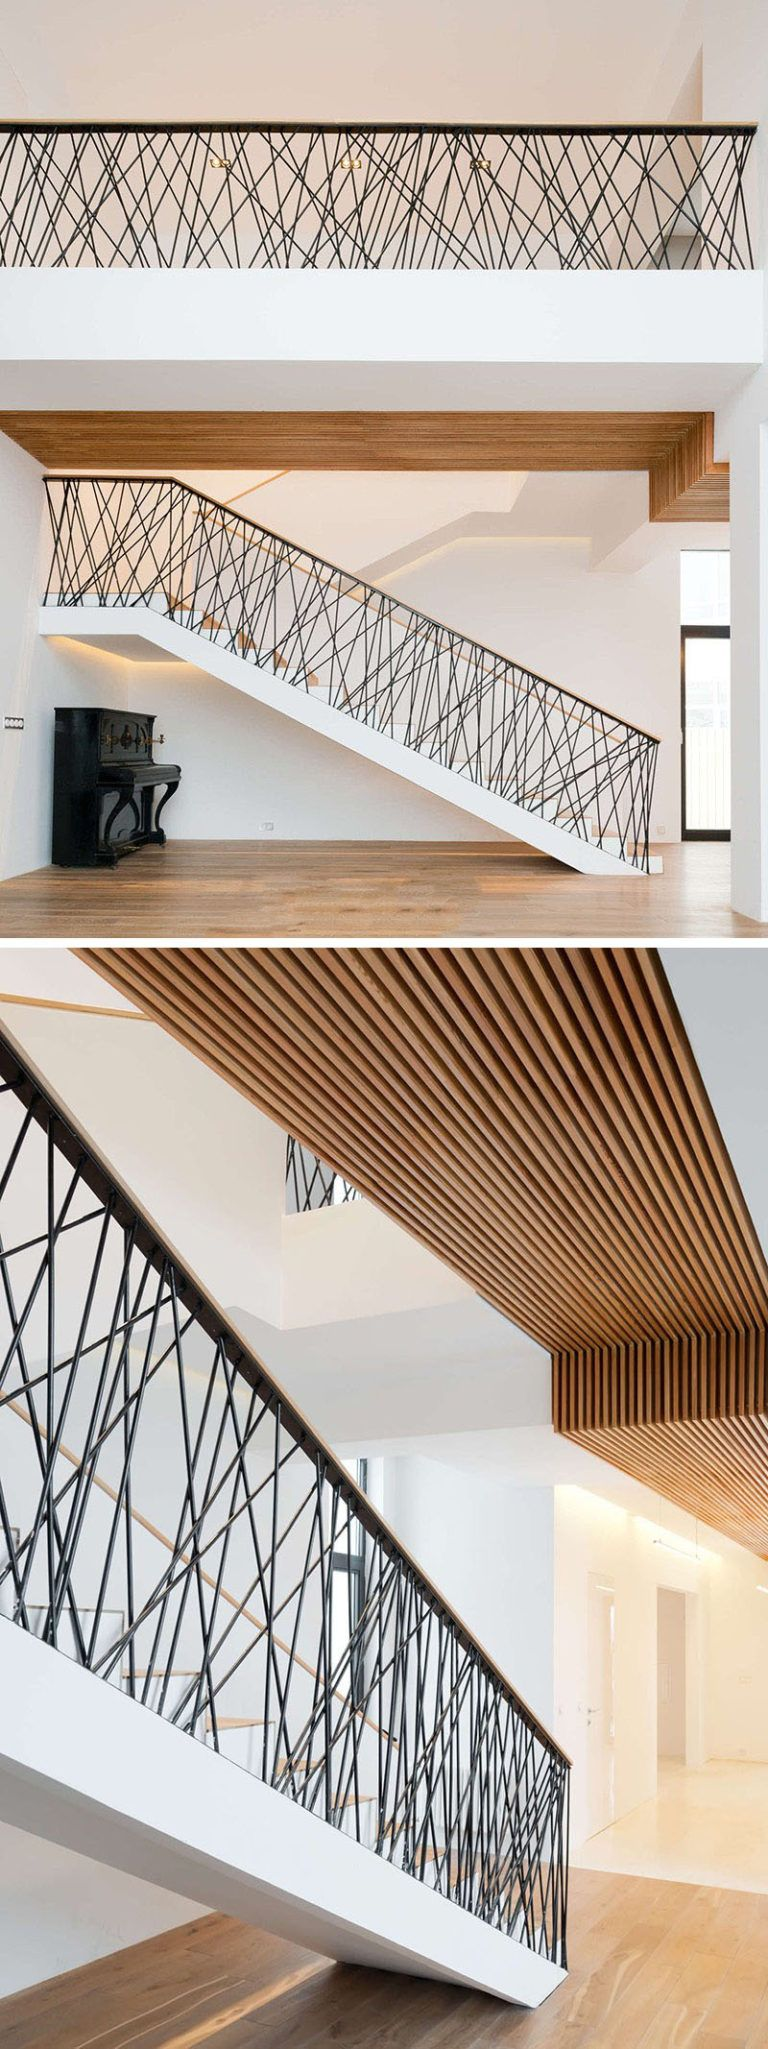 Best 11 Creative Stair Railings That Are A Focal Point In These Modern Houses Barandillas Escaleras 400 x 300